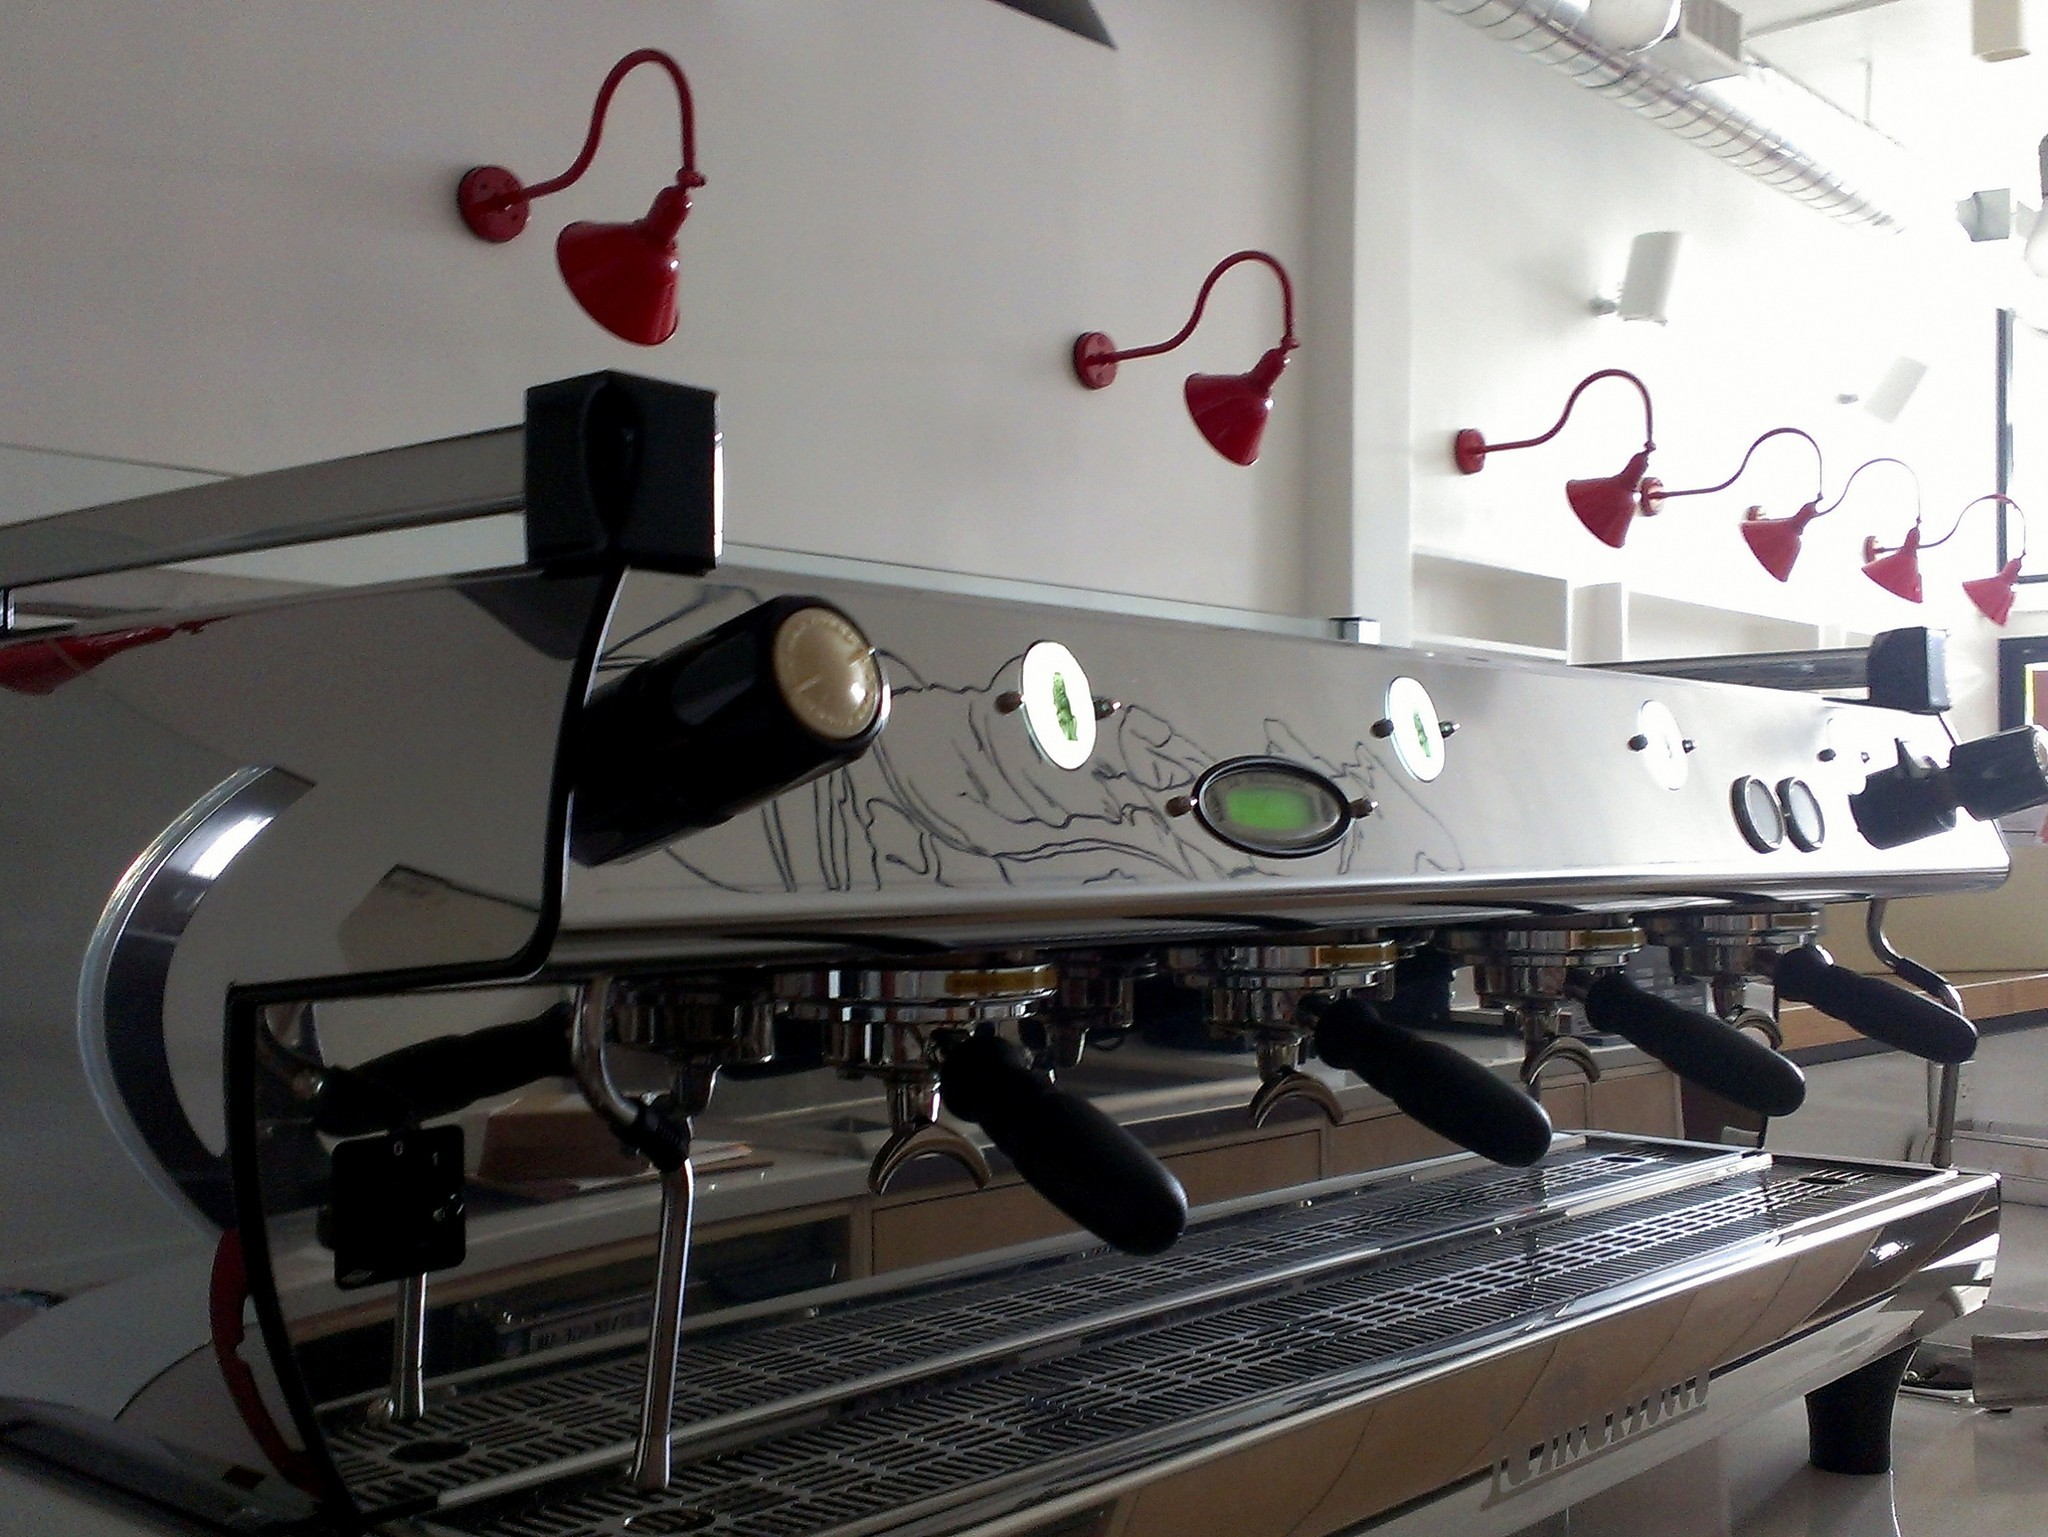 Phenomenal automated coffee Go Get Em Tiger on Larchmont says